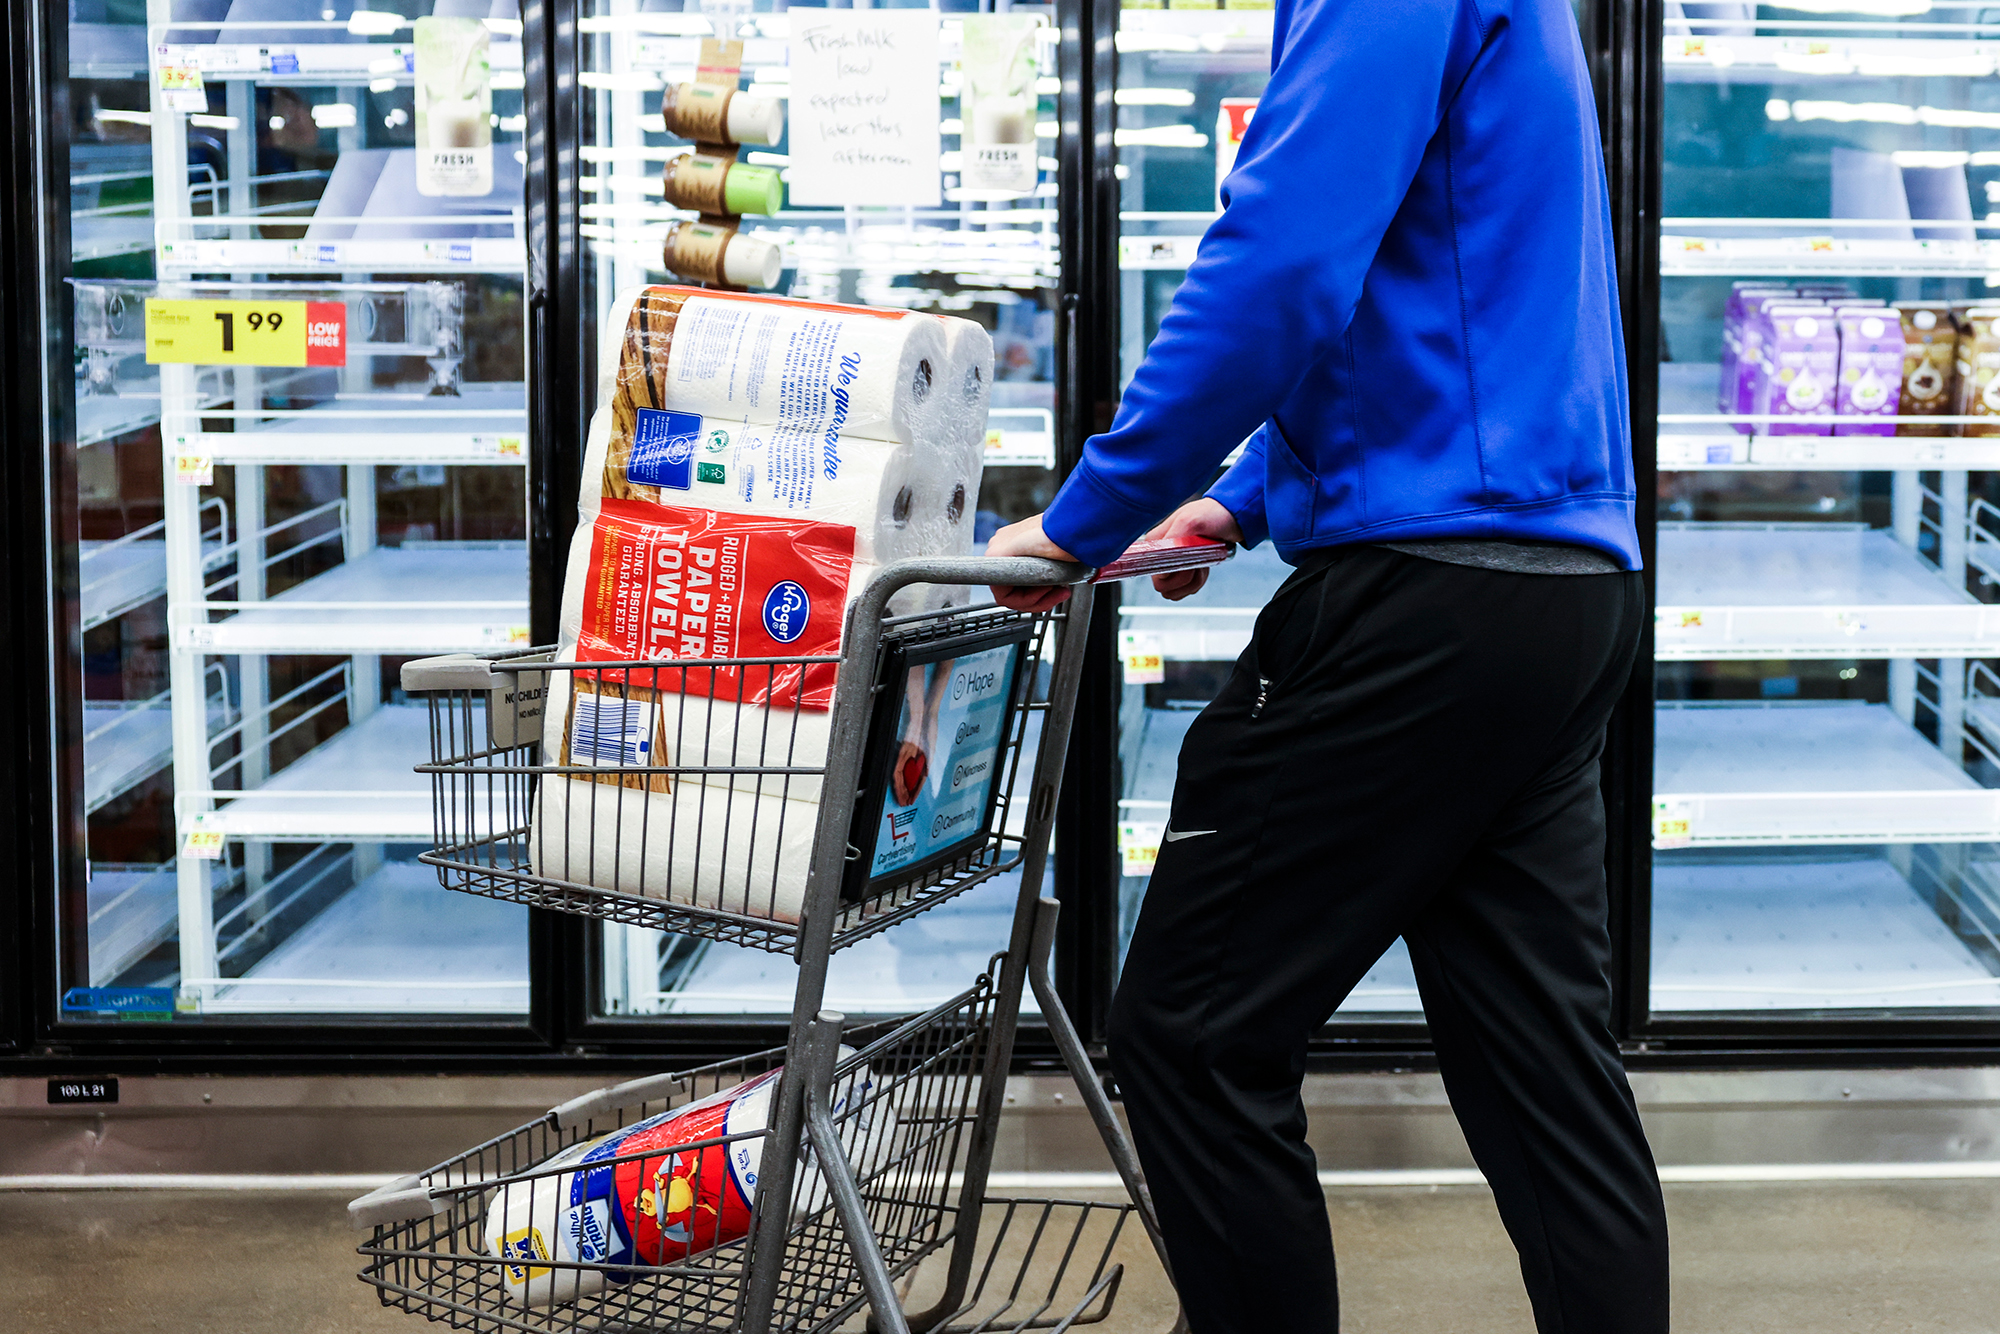 Americans are buying less toilet paper and wipes